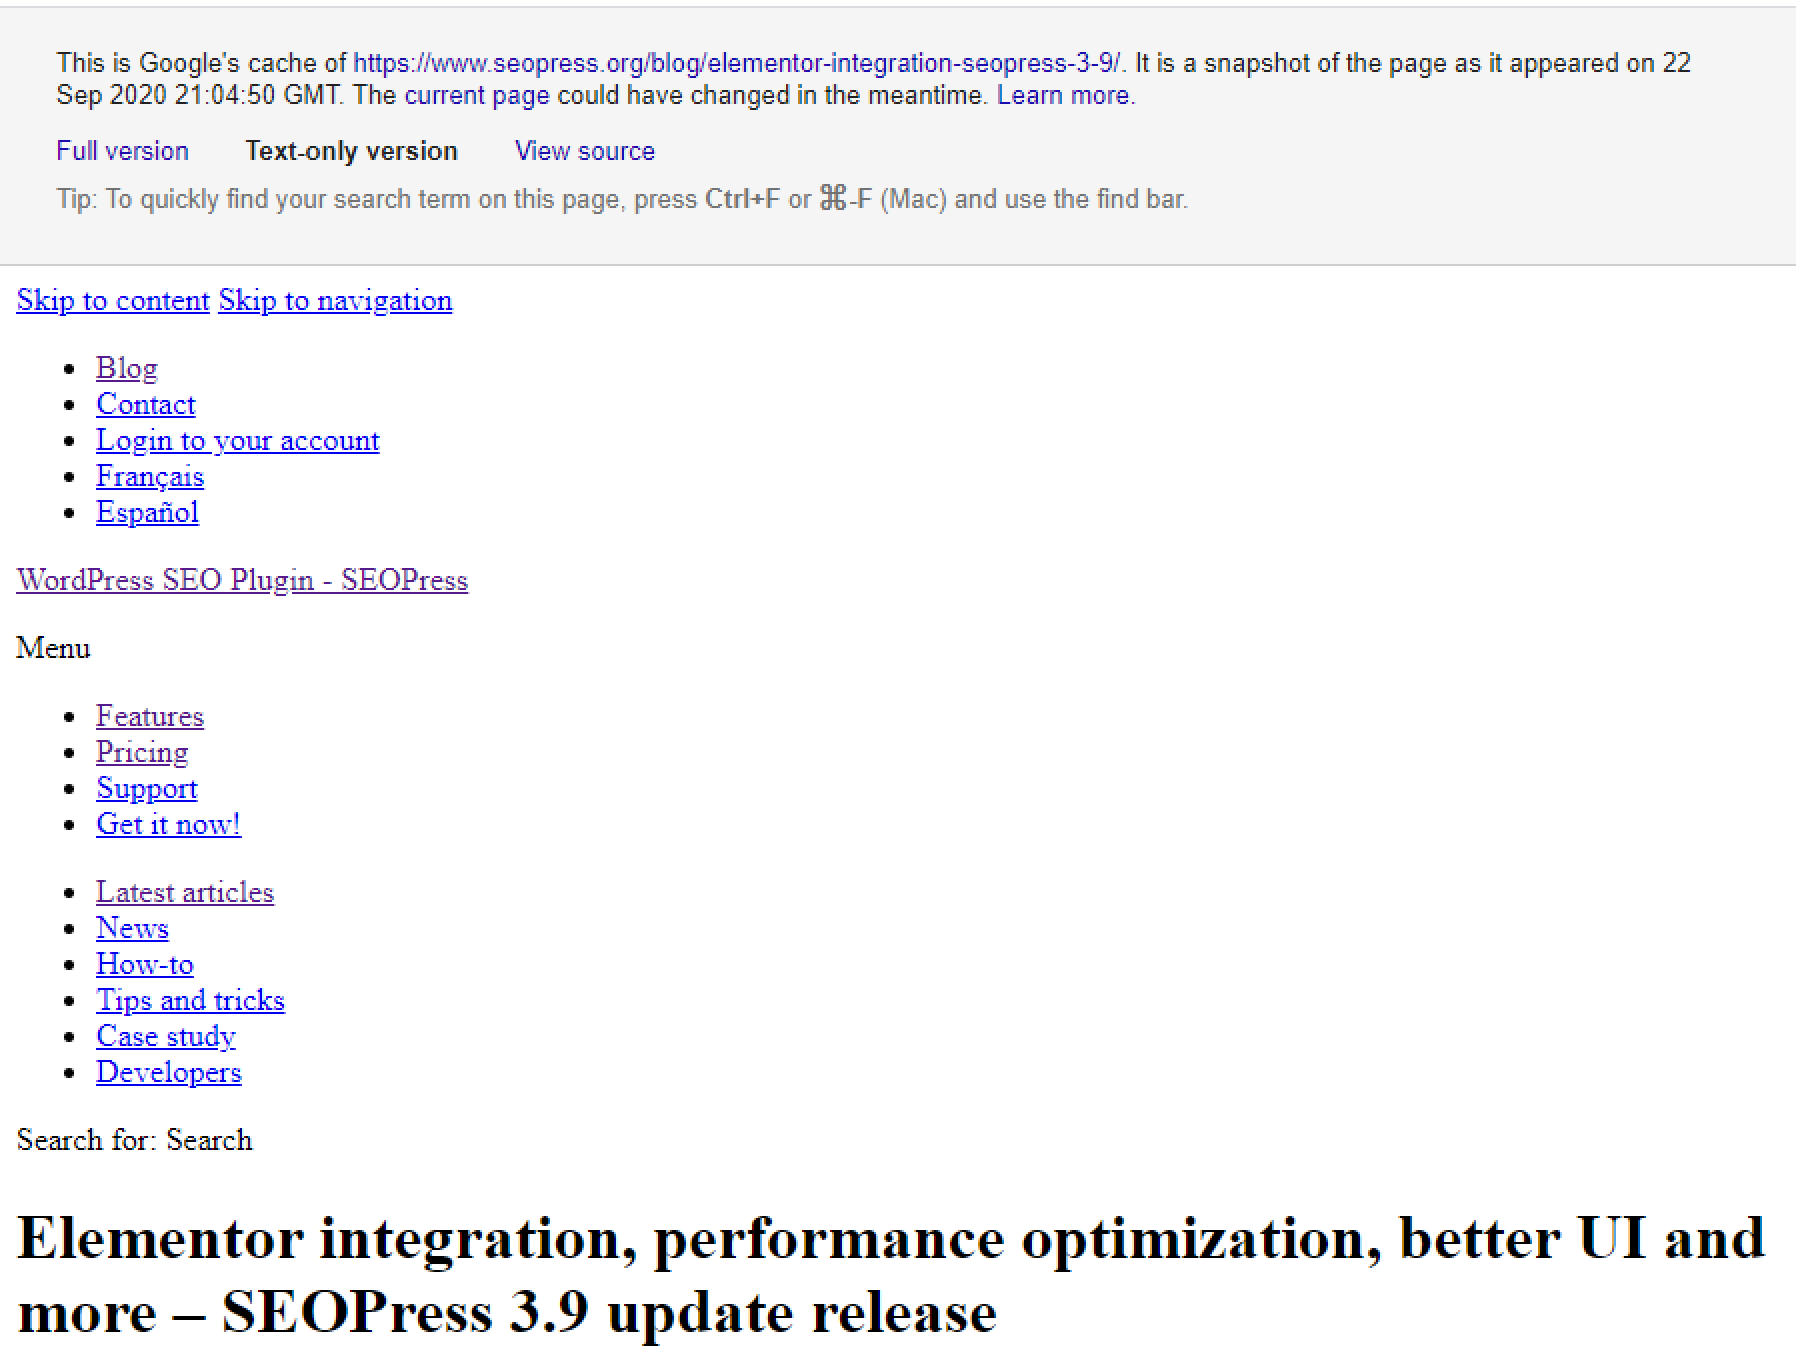 Text-only version of Google's cache of a page